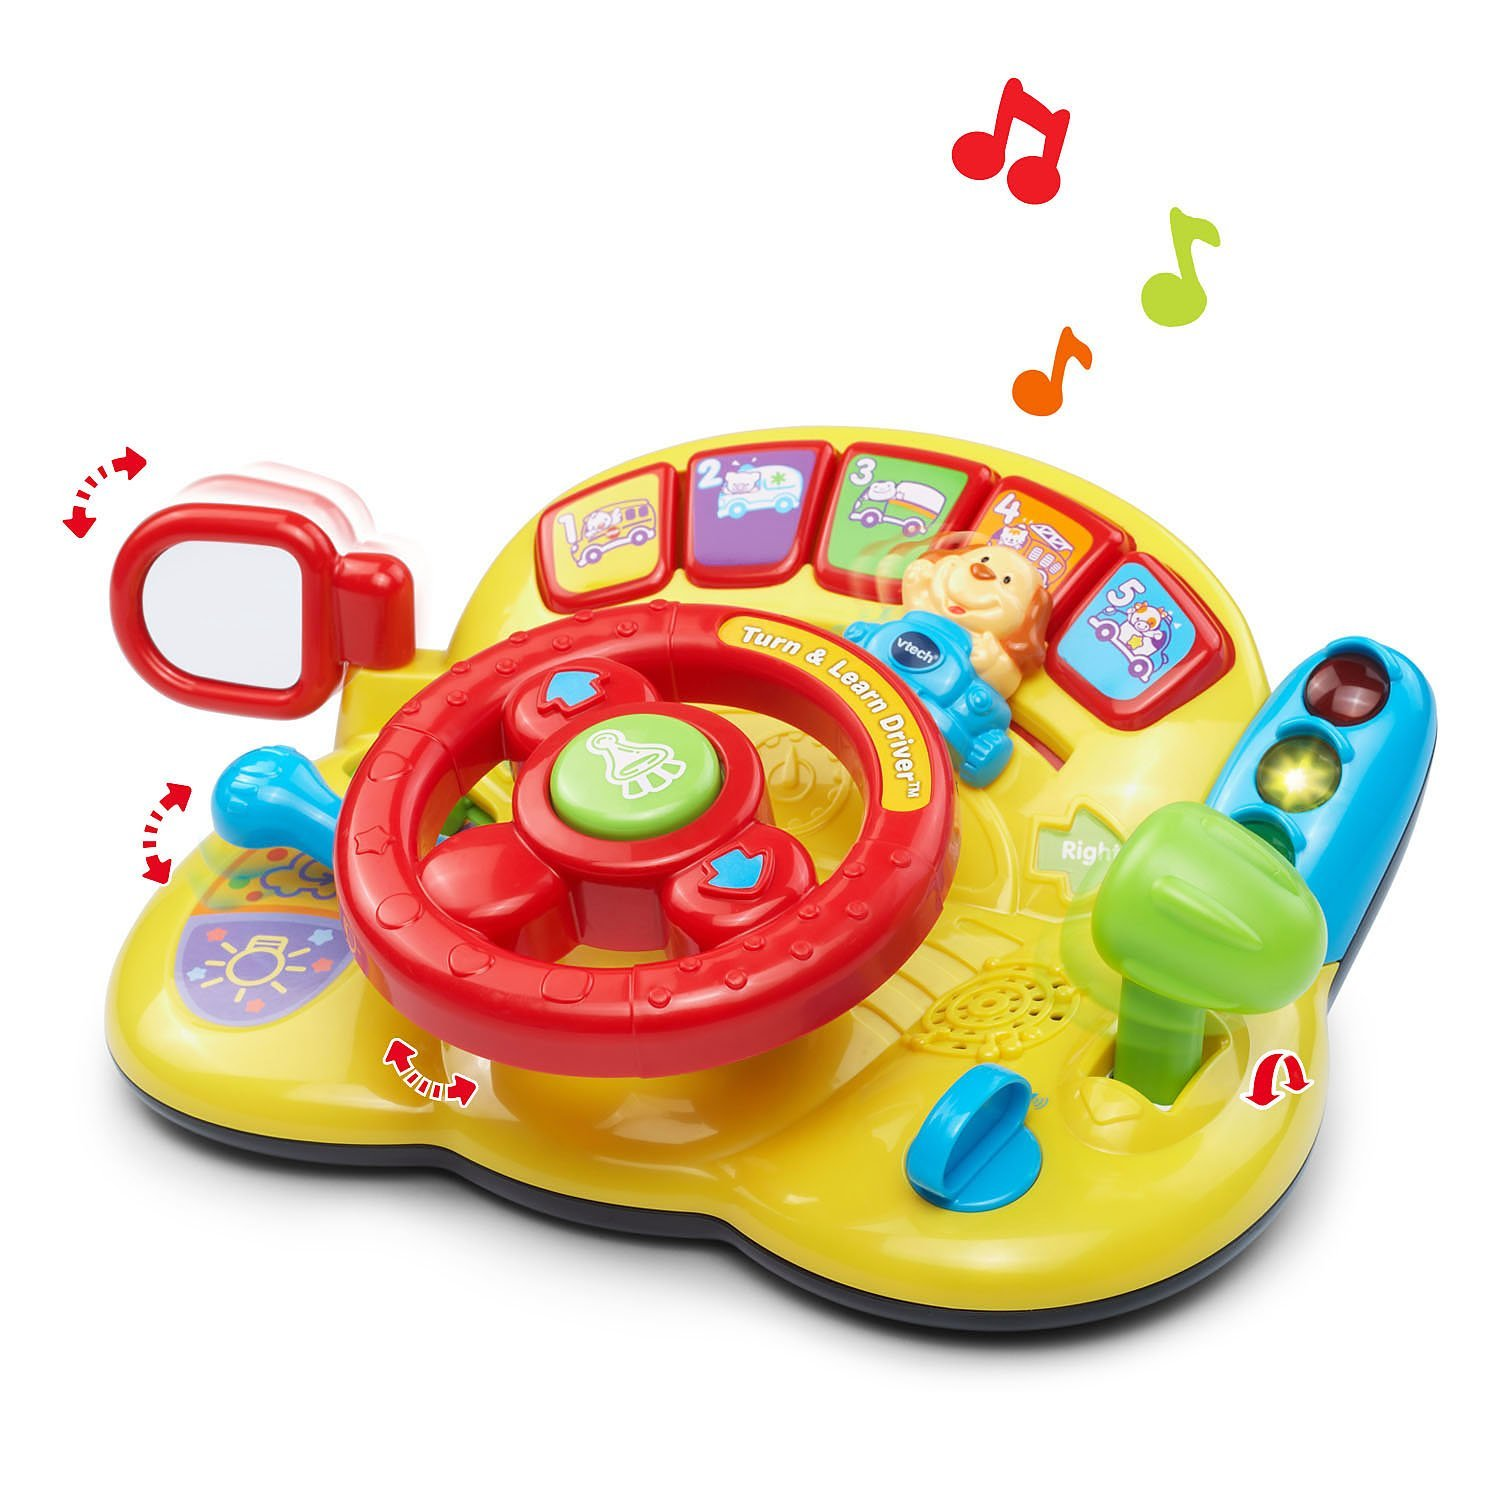 VTech Turn and Learn Driver, Includes 3 play modes, 60+ Songs, melodies & phrases New! by